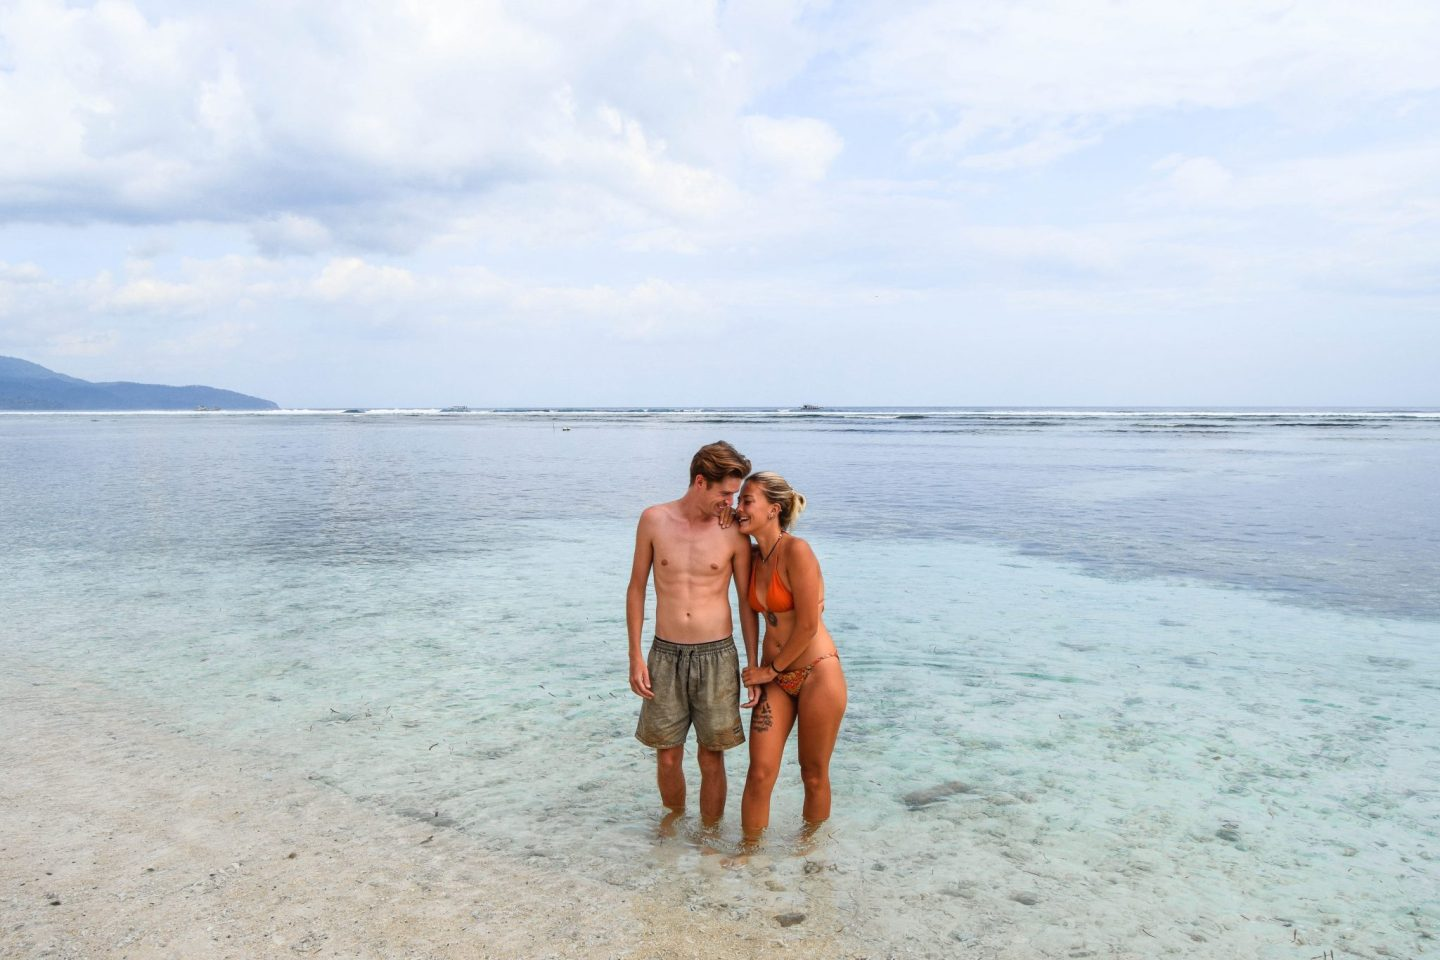 Wanderers & Warriors - Charlie & Lauren UK Travel Couple - Things To Do On Gili Trawangan - things to do gili islands the exile gili t beach